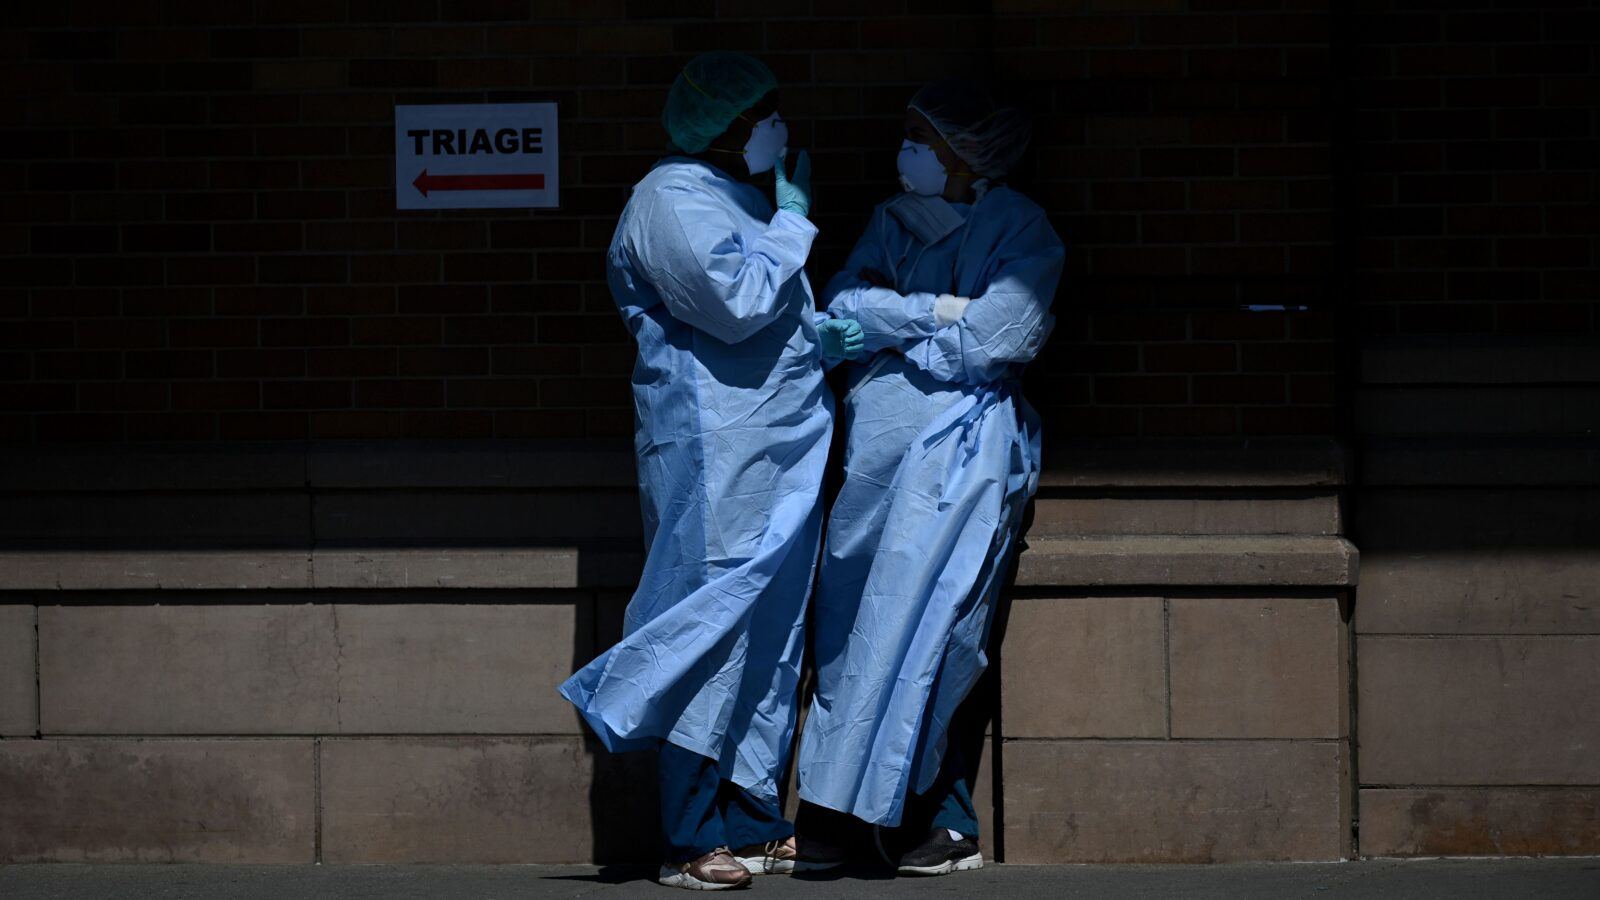 A pandemic, a funeral, and a chance to help heal the world